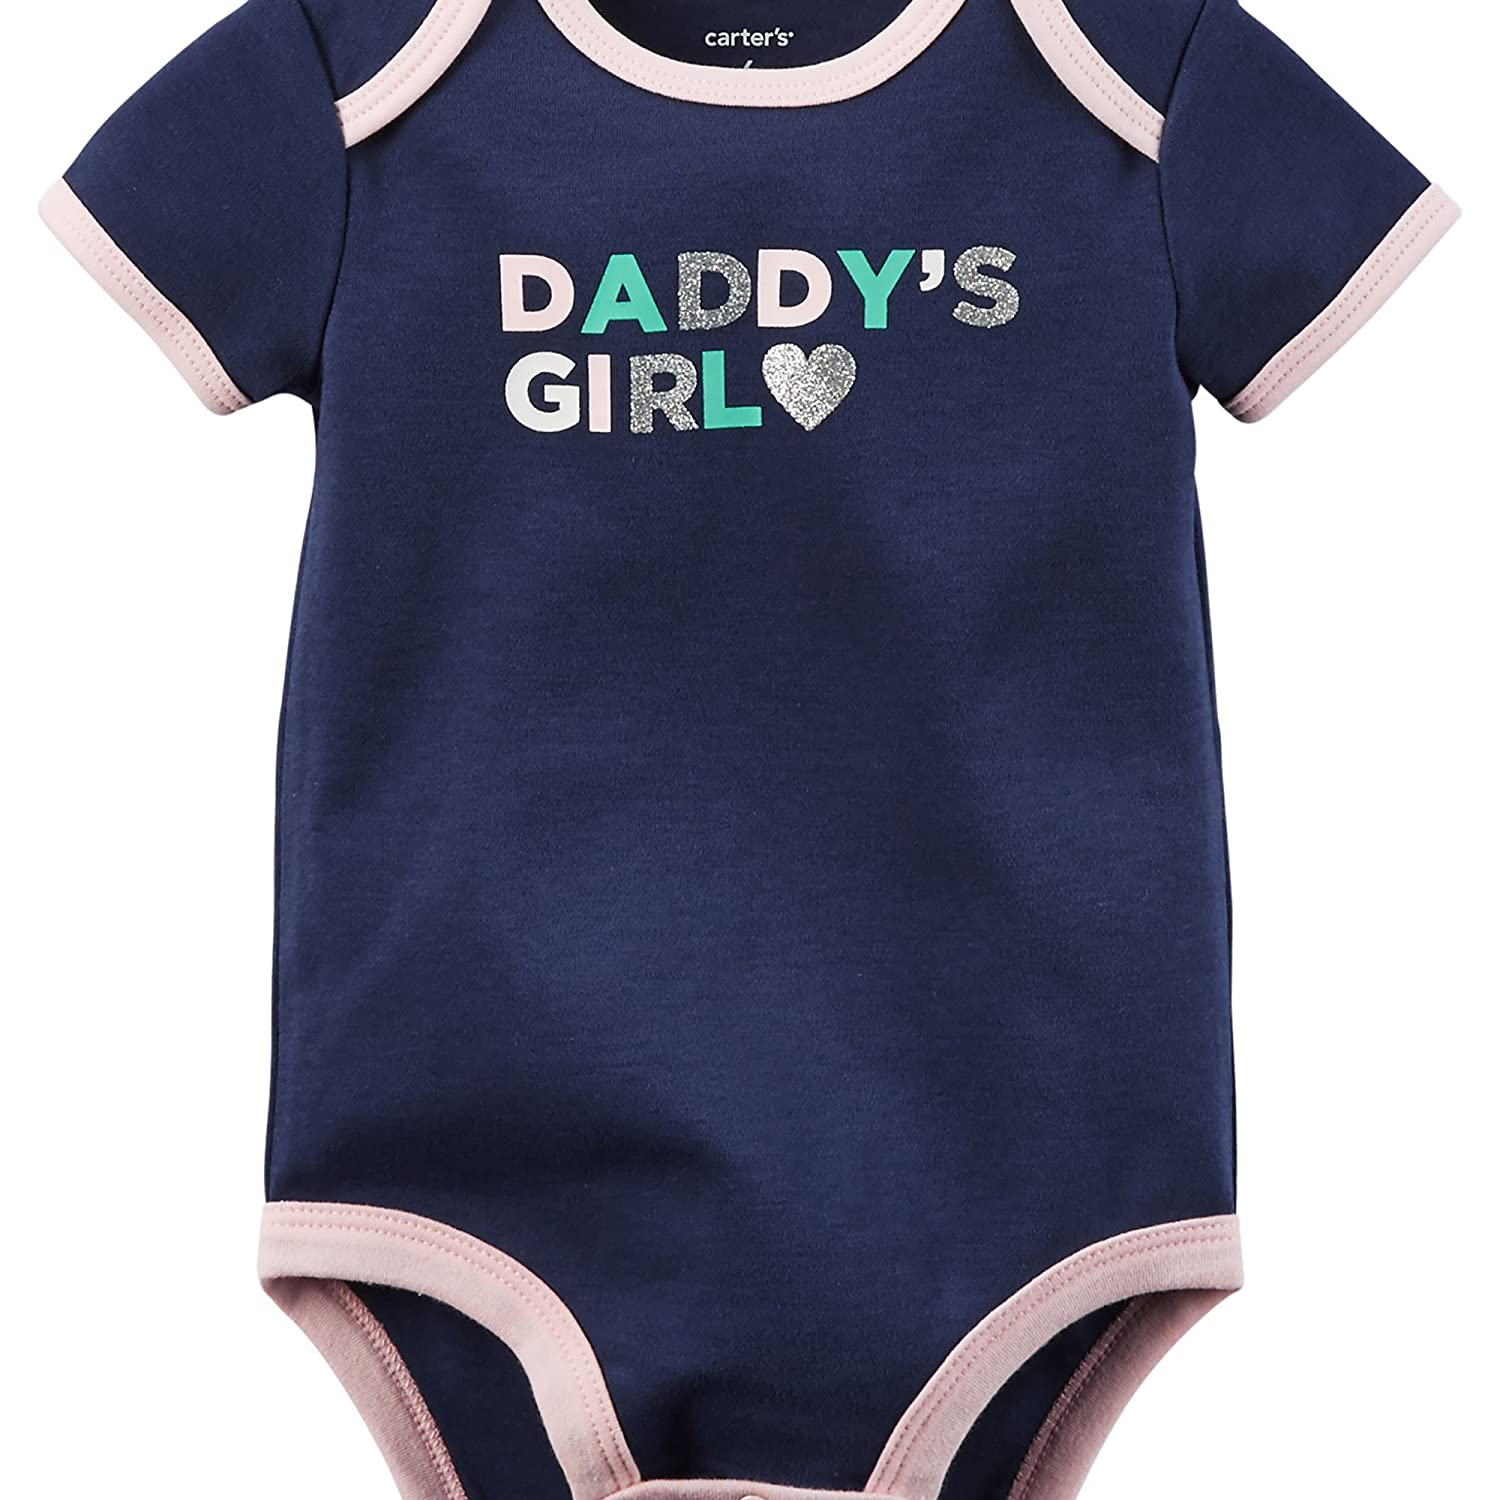 Carter/'s NWT 12M 18M Infant Girl 3Pc DADDY/'S GIRL Bodysuit Pant Set $22